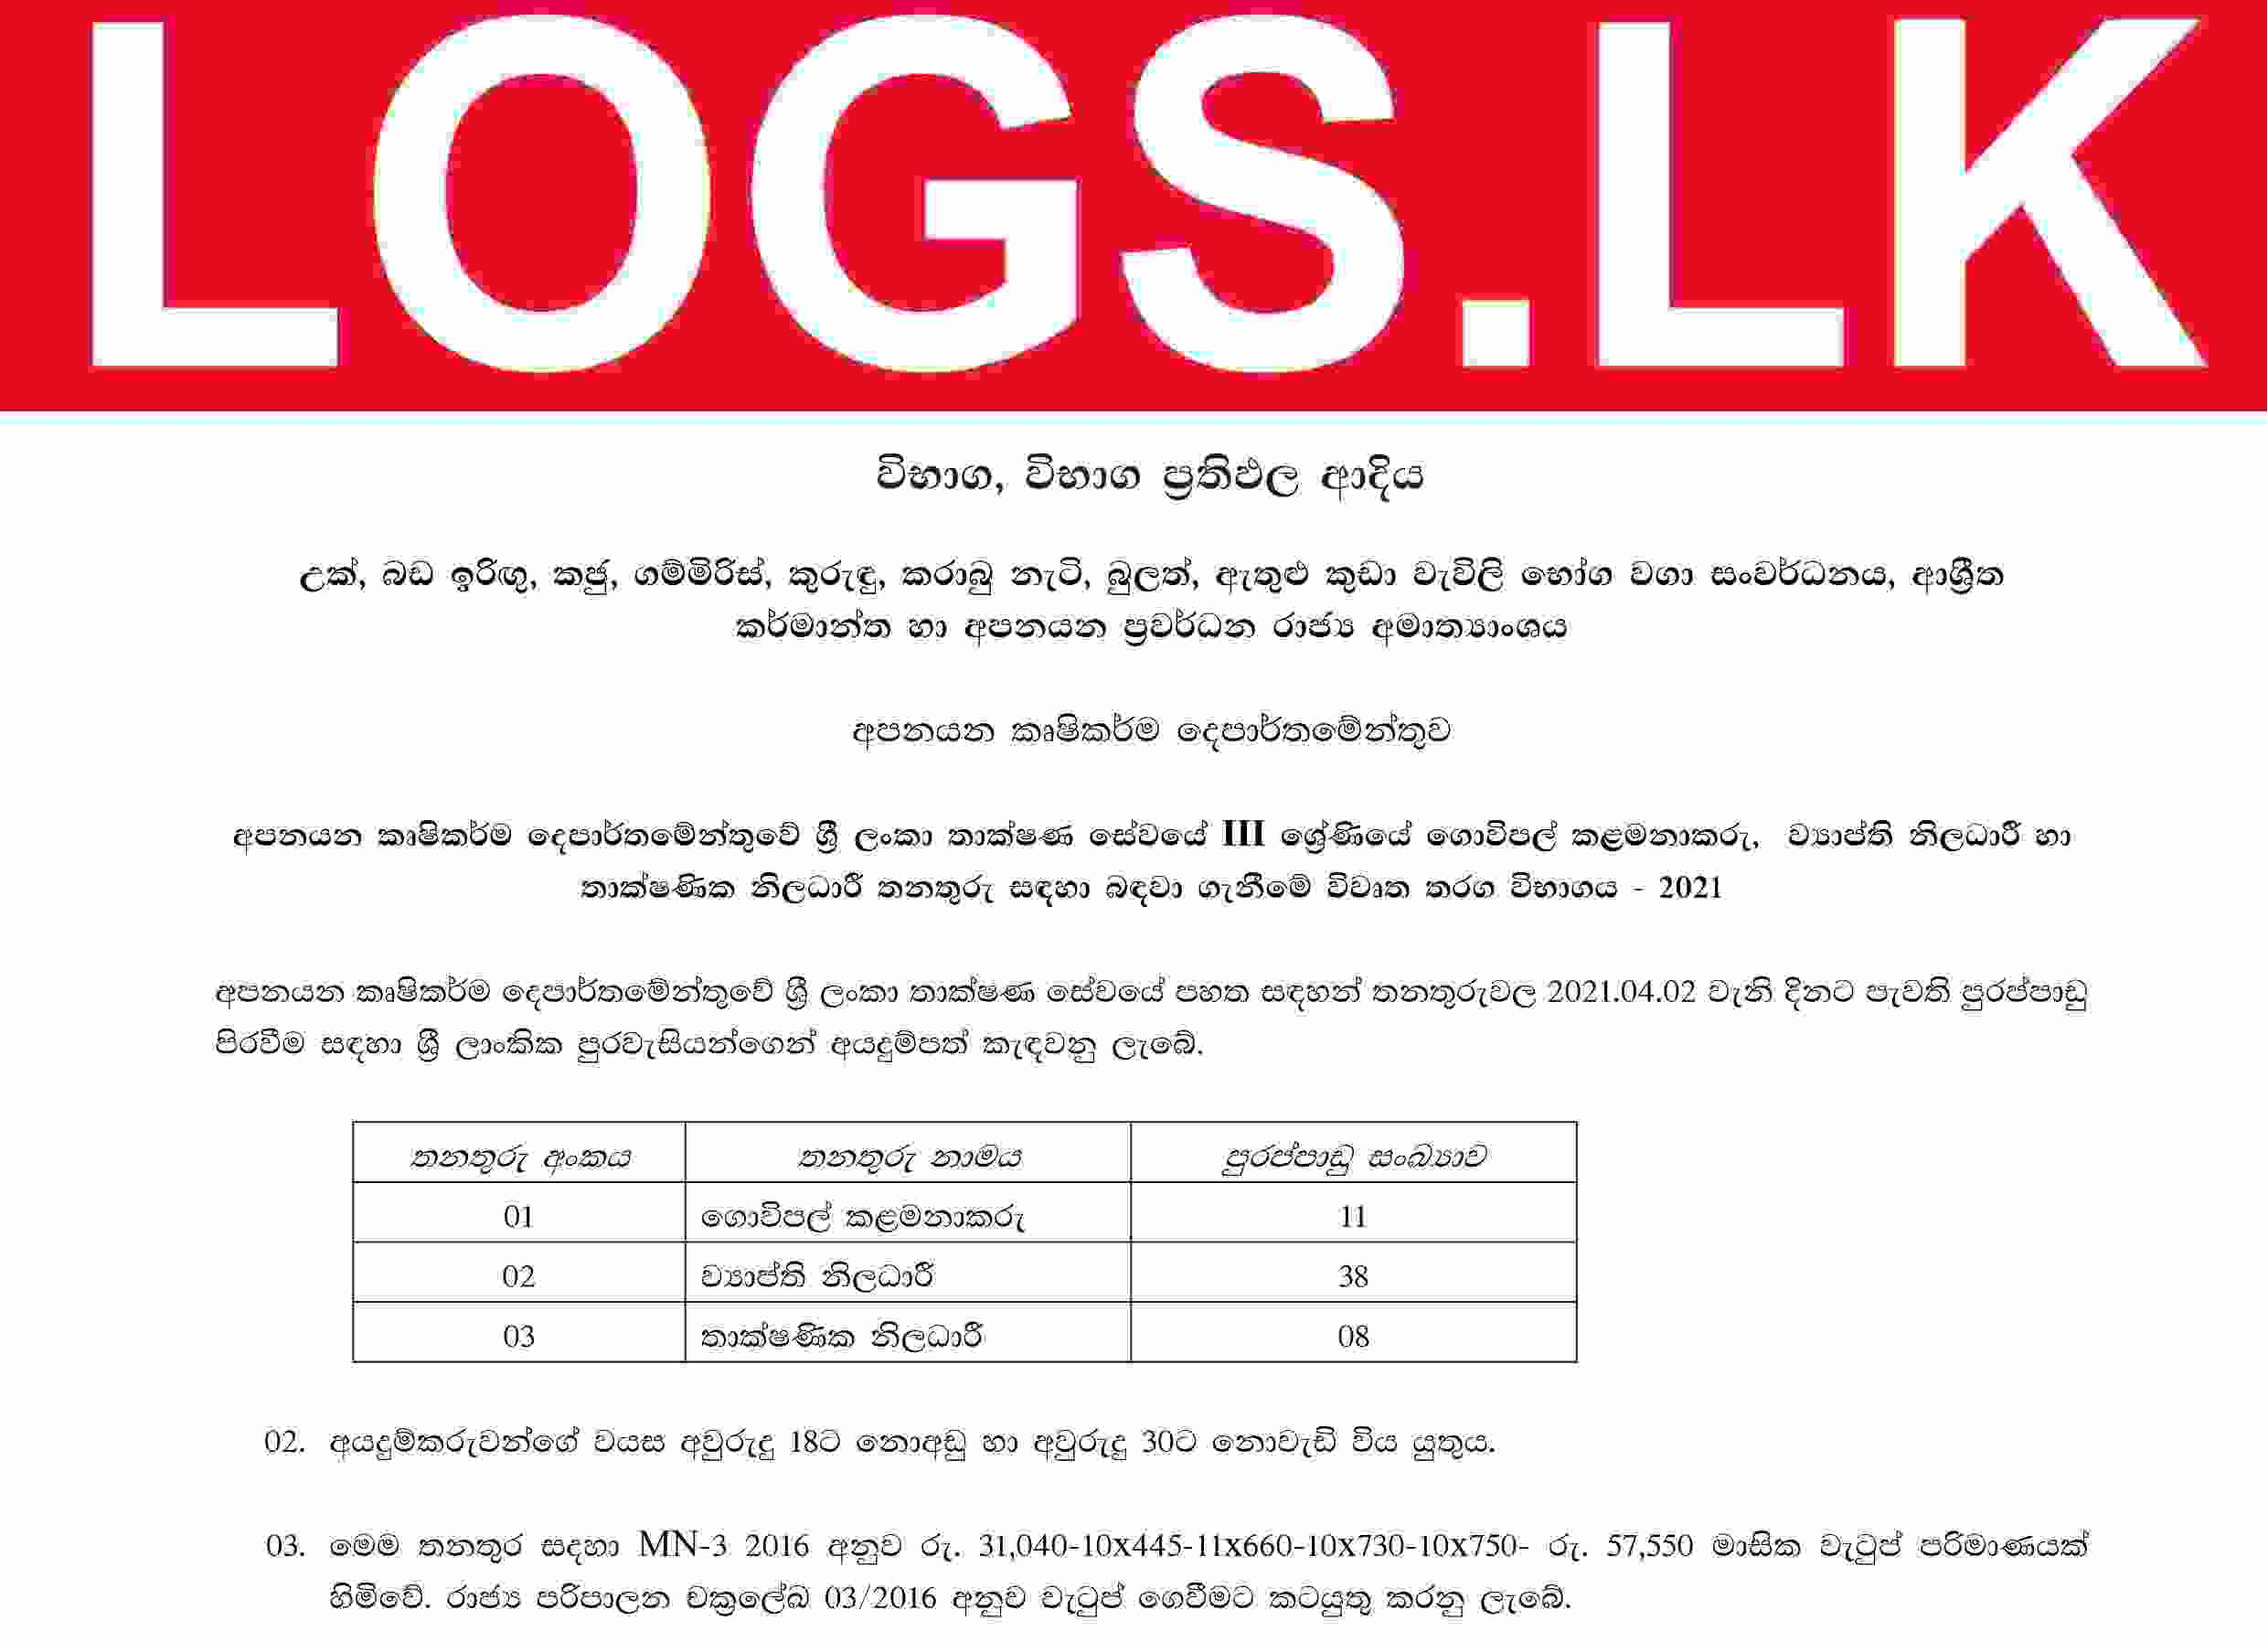 Farm Manager, Extension Officer, Technological Officer - Department of Export Agriculture Sinhala